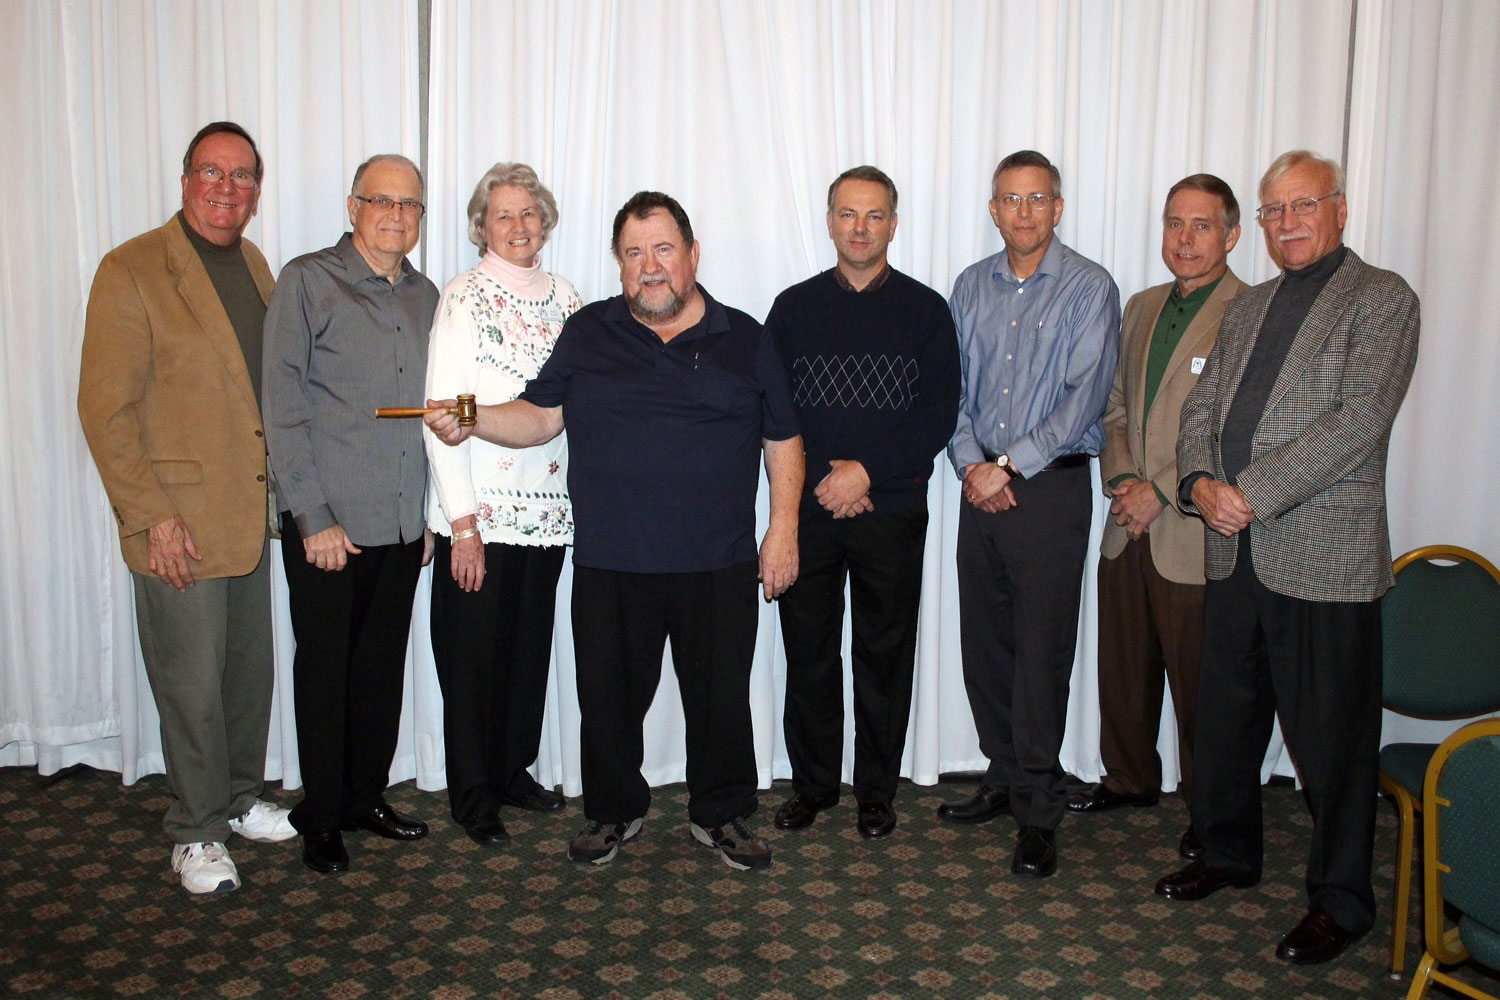 New 2017 officers - outgoing Pres Fred Burk, Treasurer Dave Hitt, Secretary Alice Schott, new Pres John Gibbons, board member Larry Shepard, VP Darrell Sanderson, board memberGreg Piel and Tom Holtgrave standing in for board member Mike Rolwes